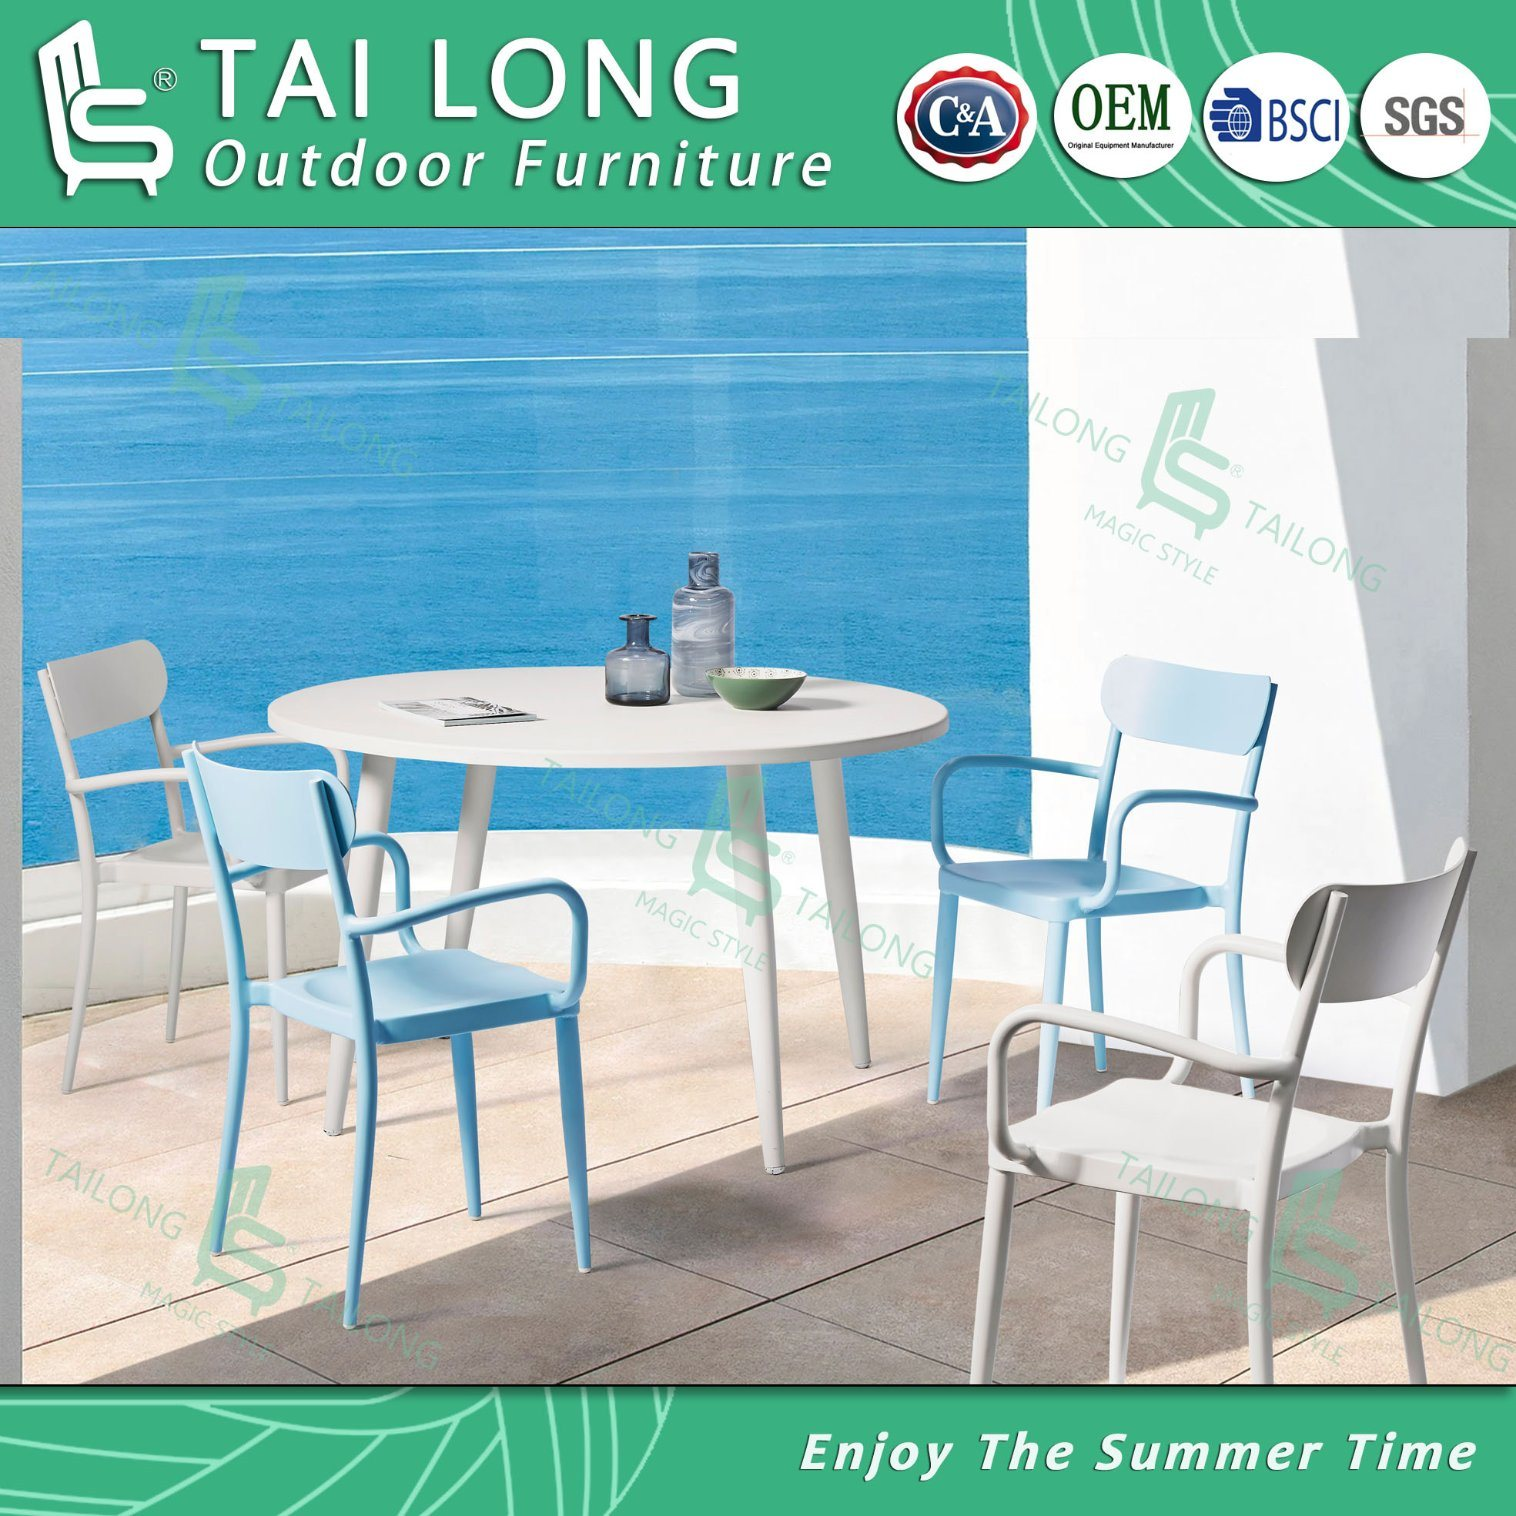 Chinese Outdoor Aluminum Dining Chair With Round Dining Table Garden Furniture China Garden Furniture Outdoor Furniture Made In China Com